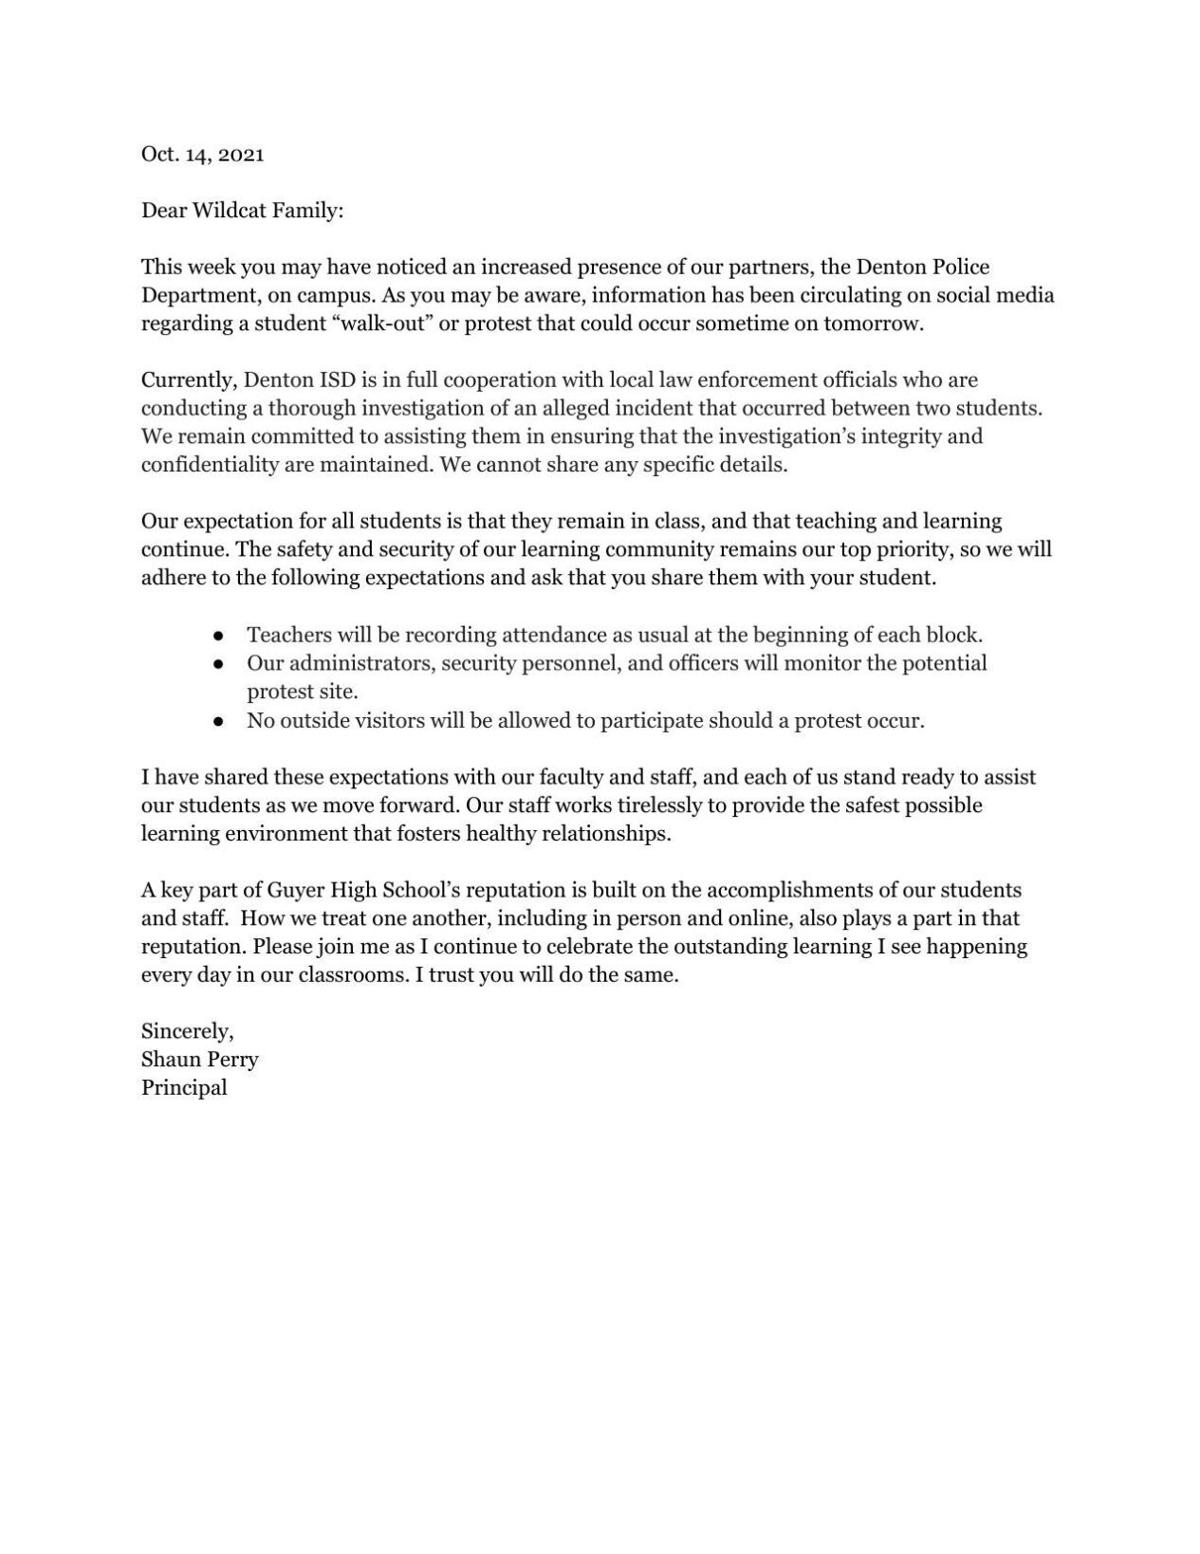 Guyer High School email to parents